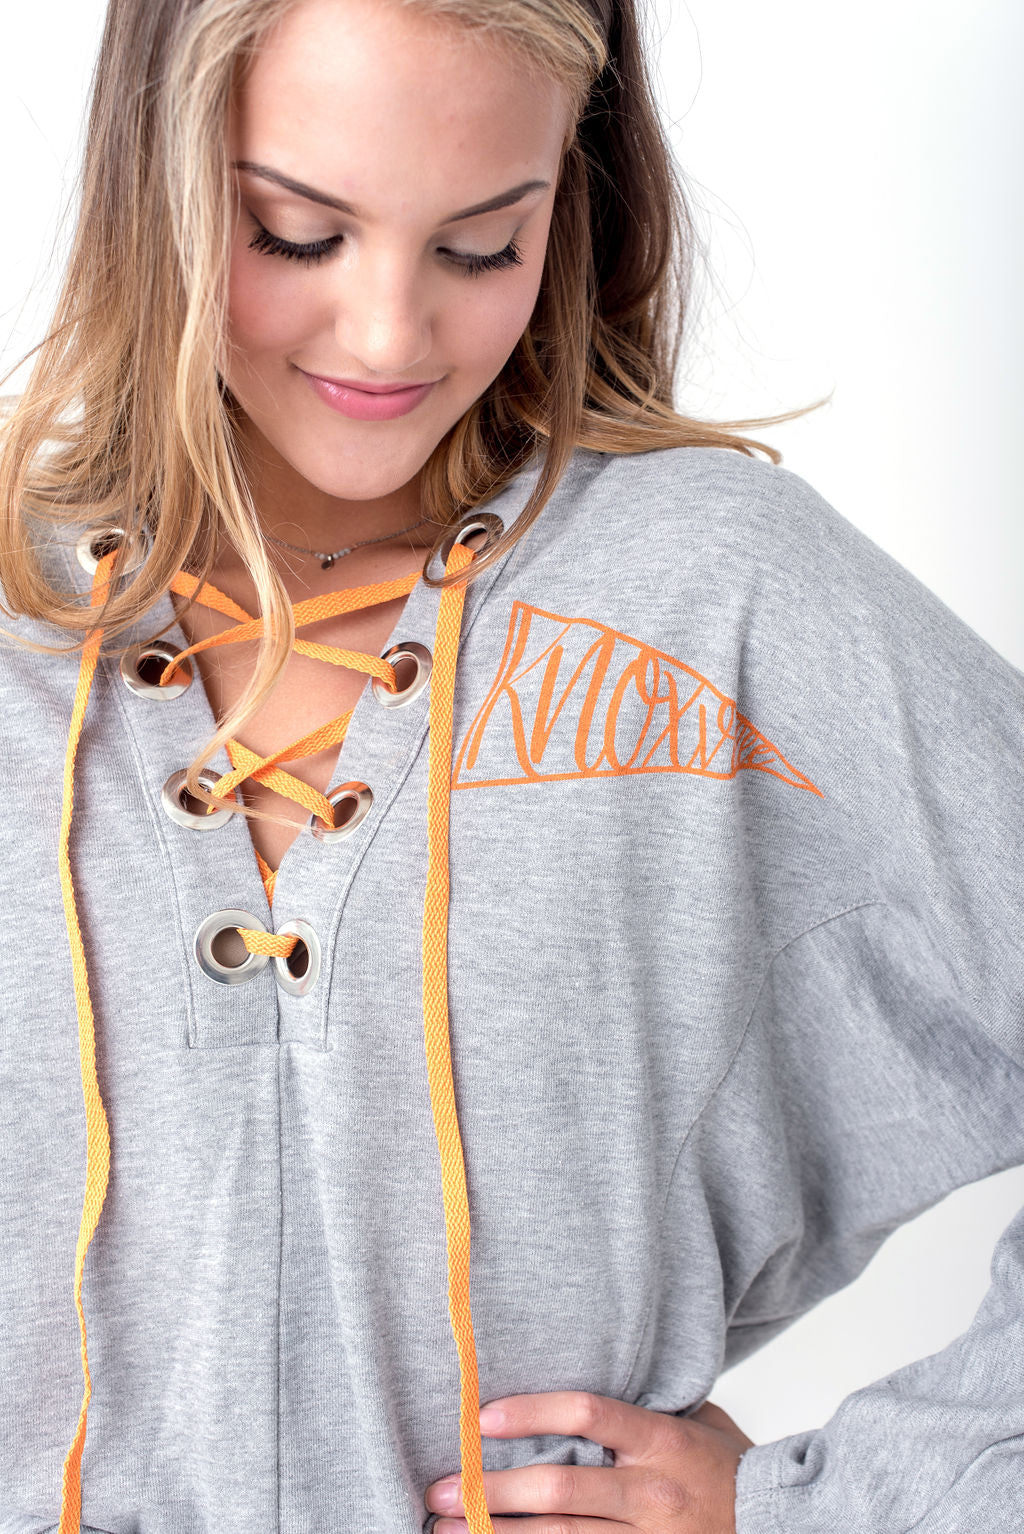 Lace Up Hoodie Knoxville